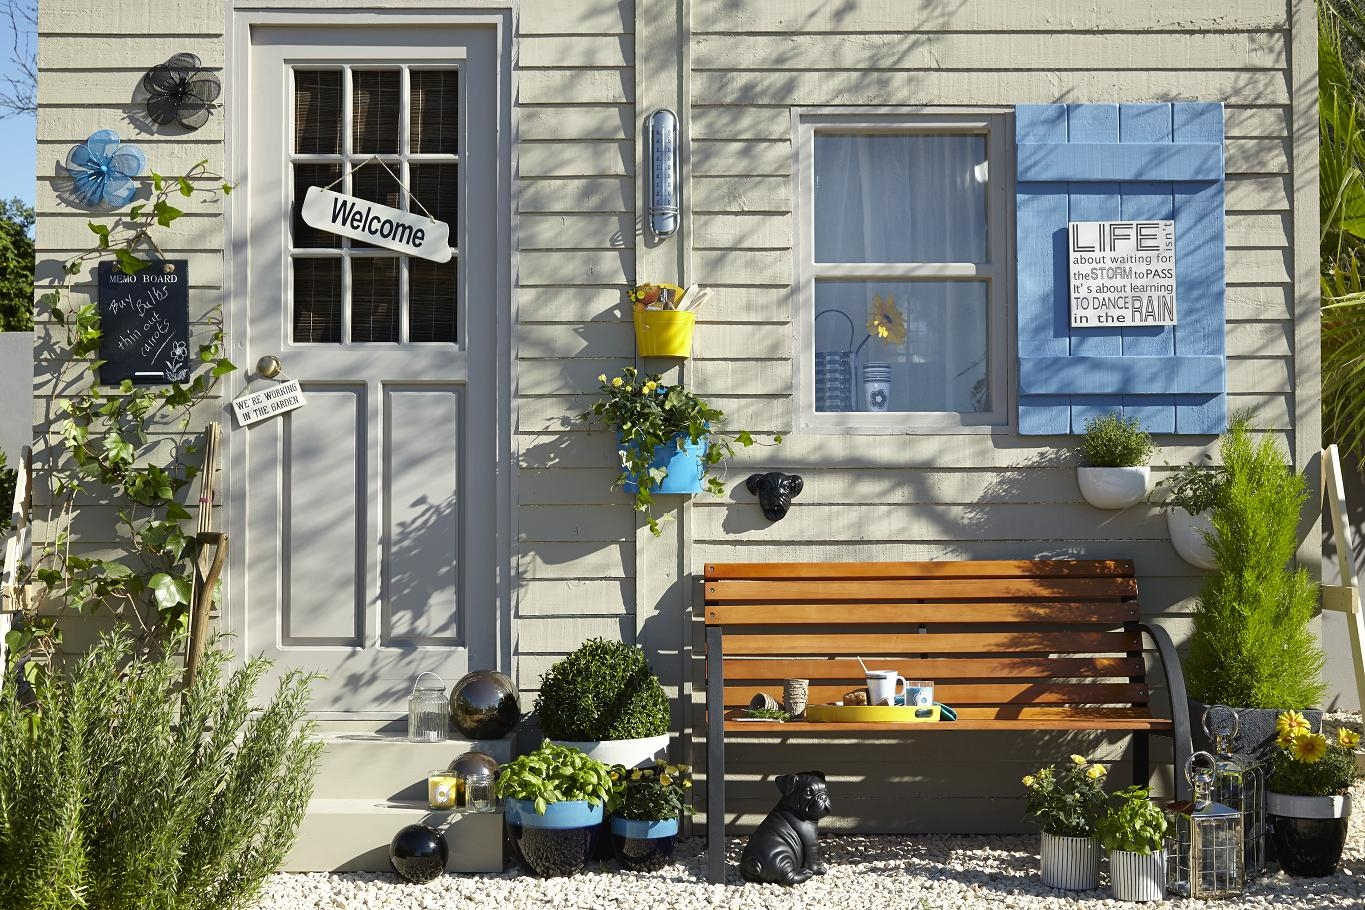 gnome place like home wilkolife Wilkinson Wire Colours personalising your outdoor space has never been easier it doesn't have to be all about garden gnomes, vegetable patches and beautiful borders at wilko we wilkinson pickups wire colours